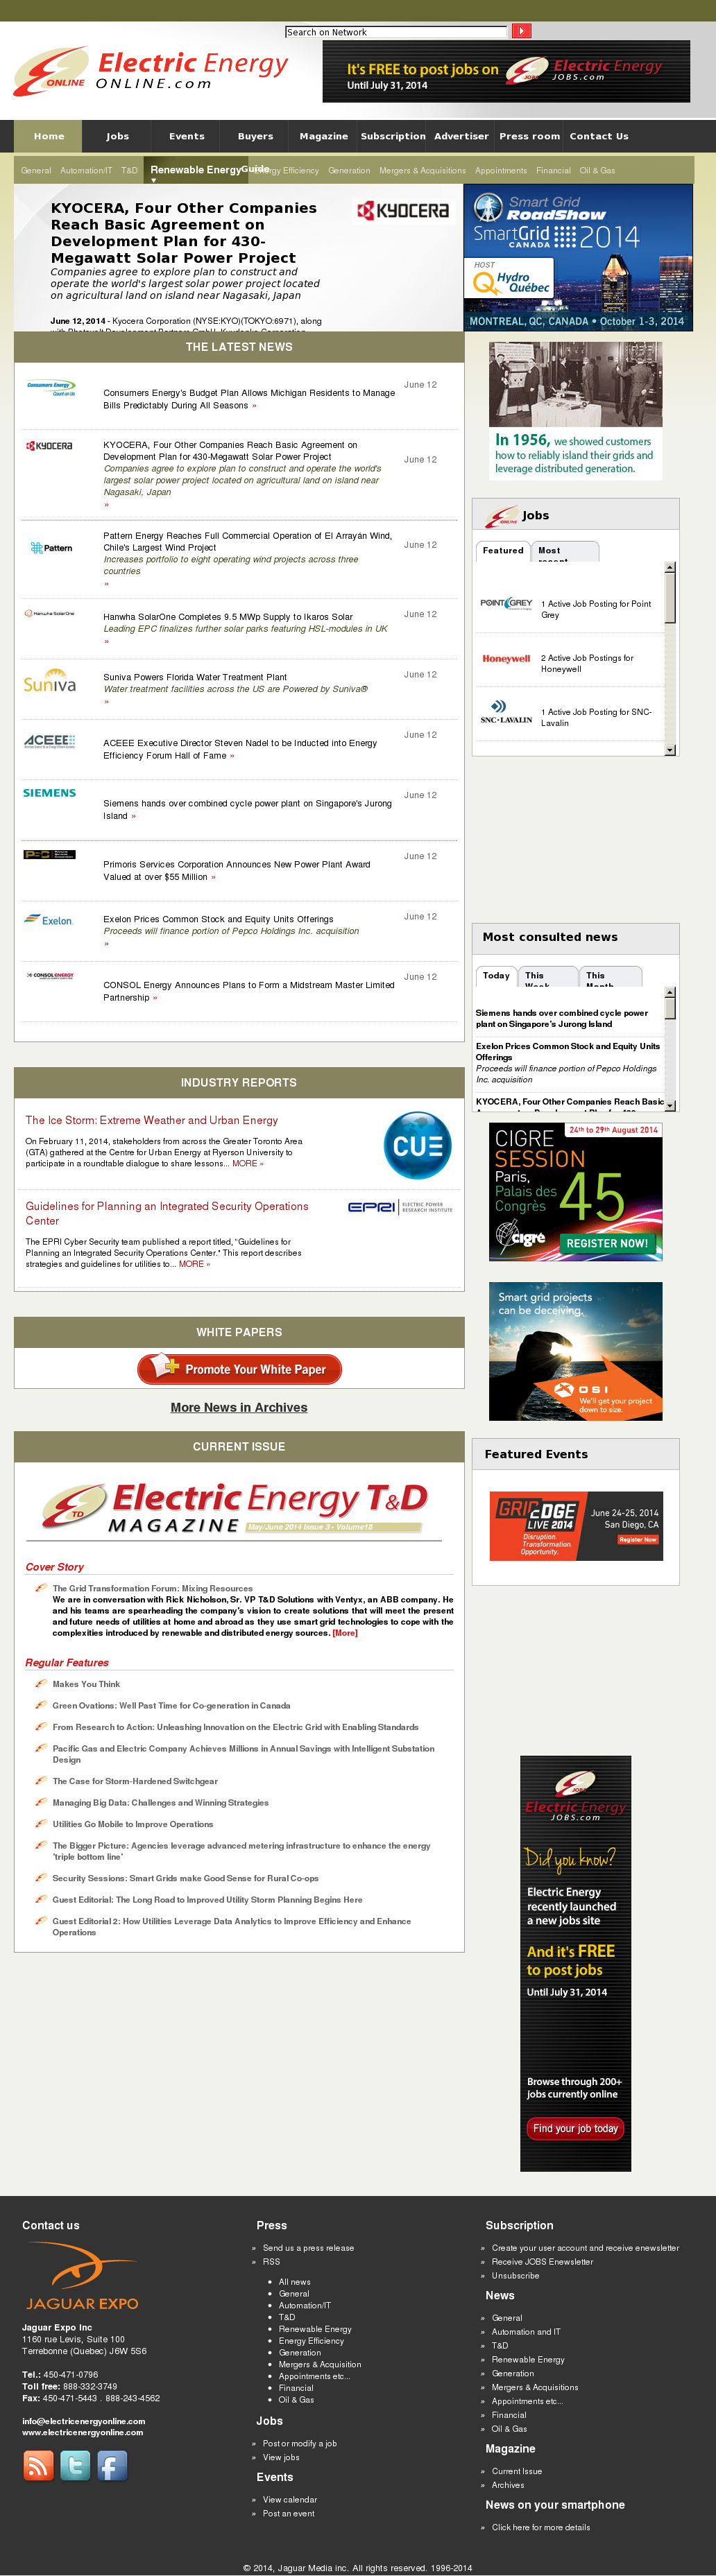 Electric Energy Online Competitors, Revenue and Employees - Owler